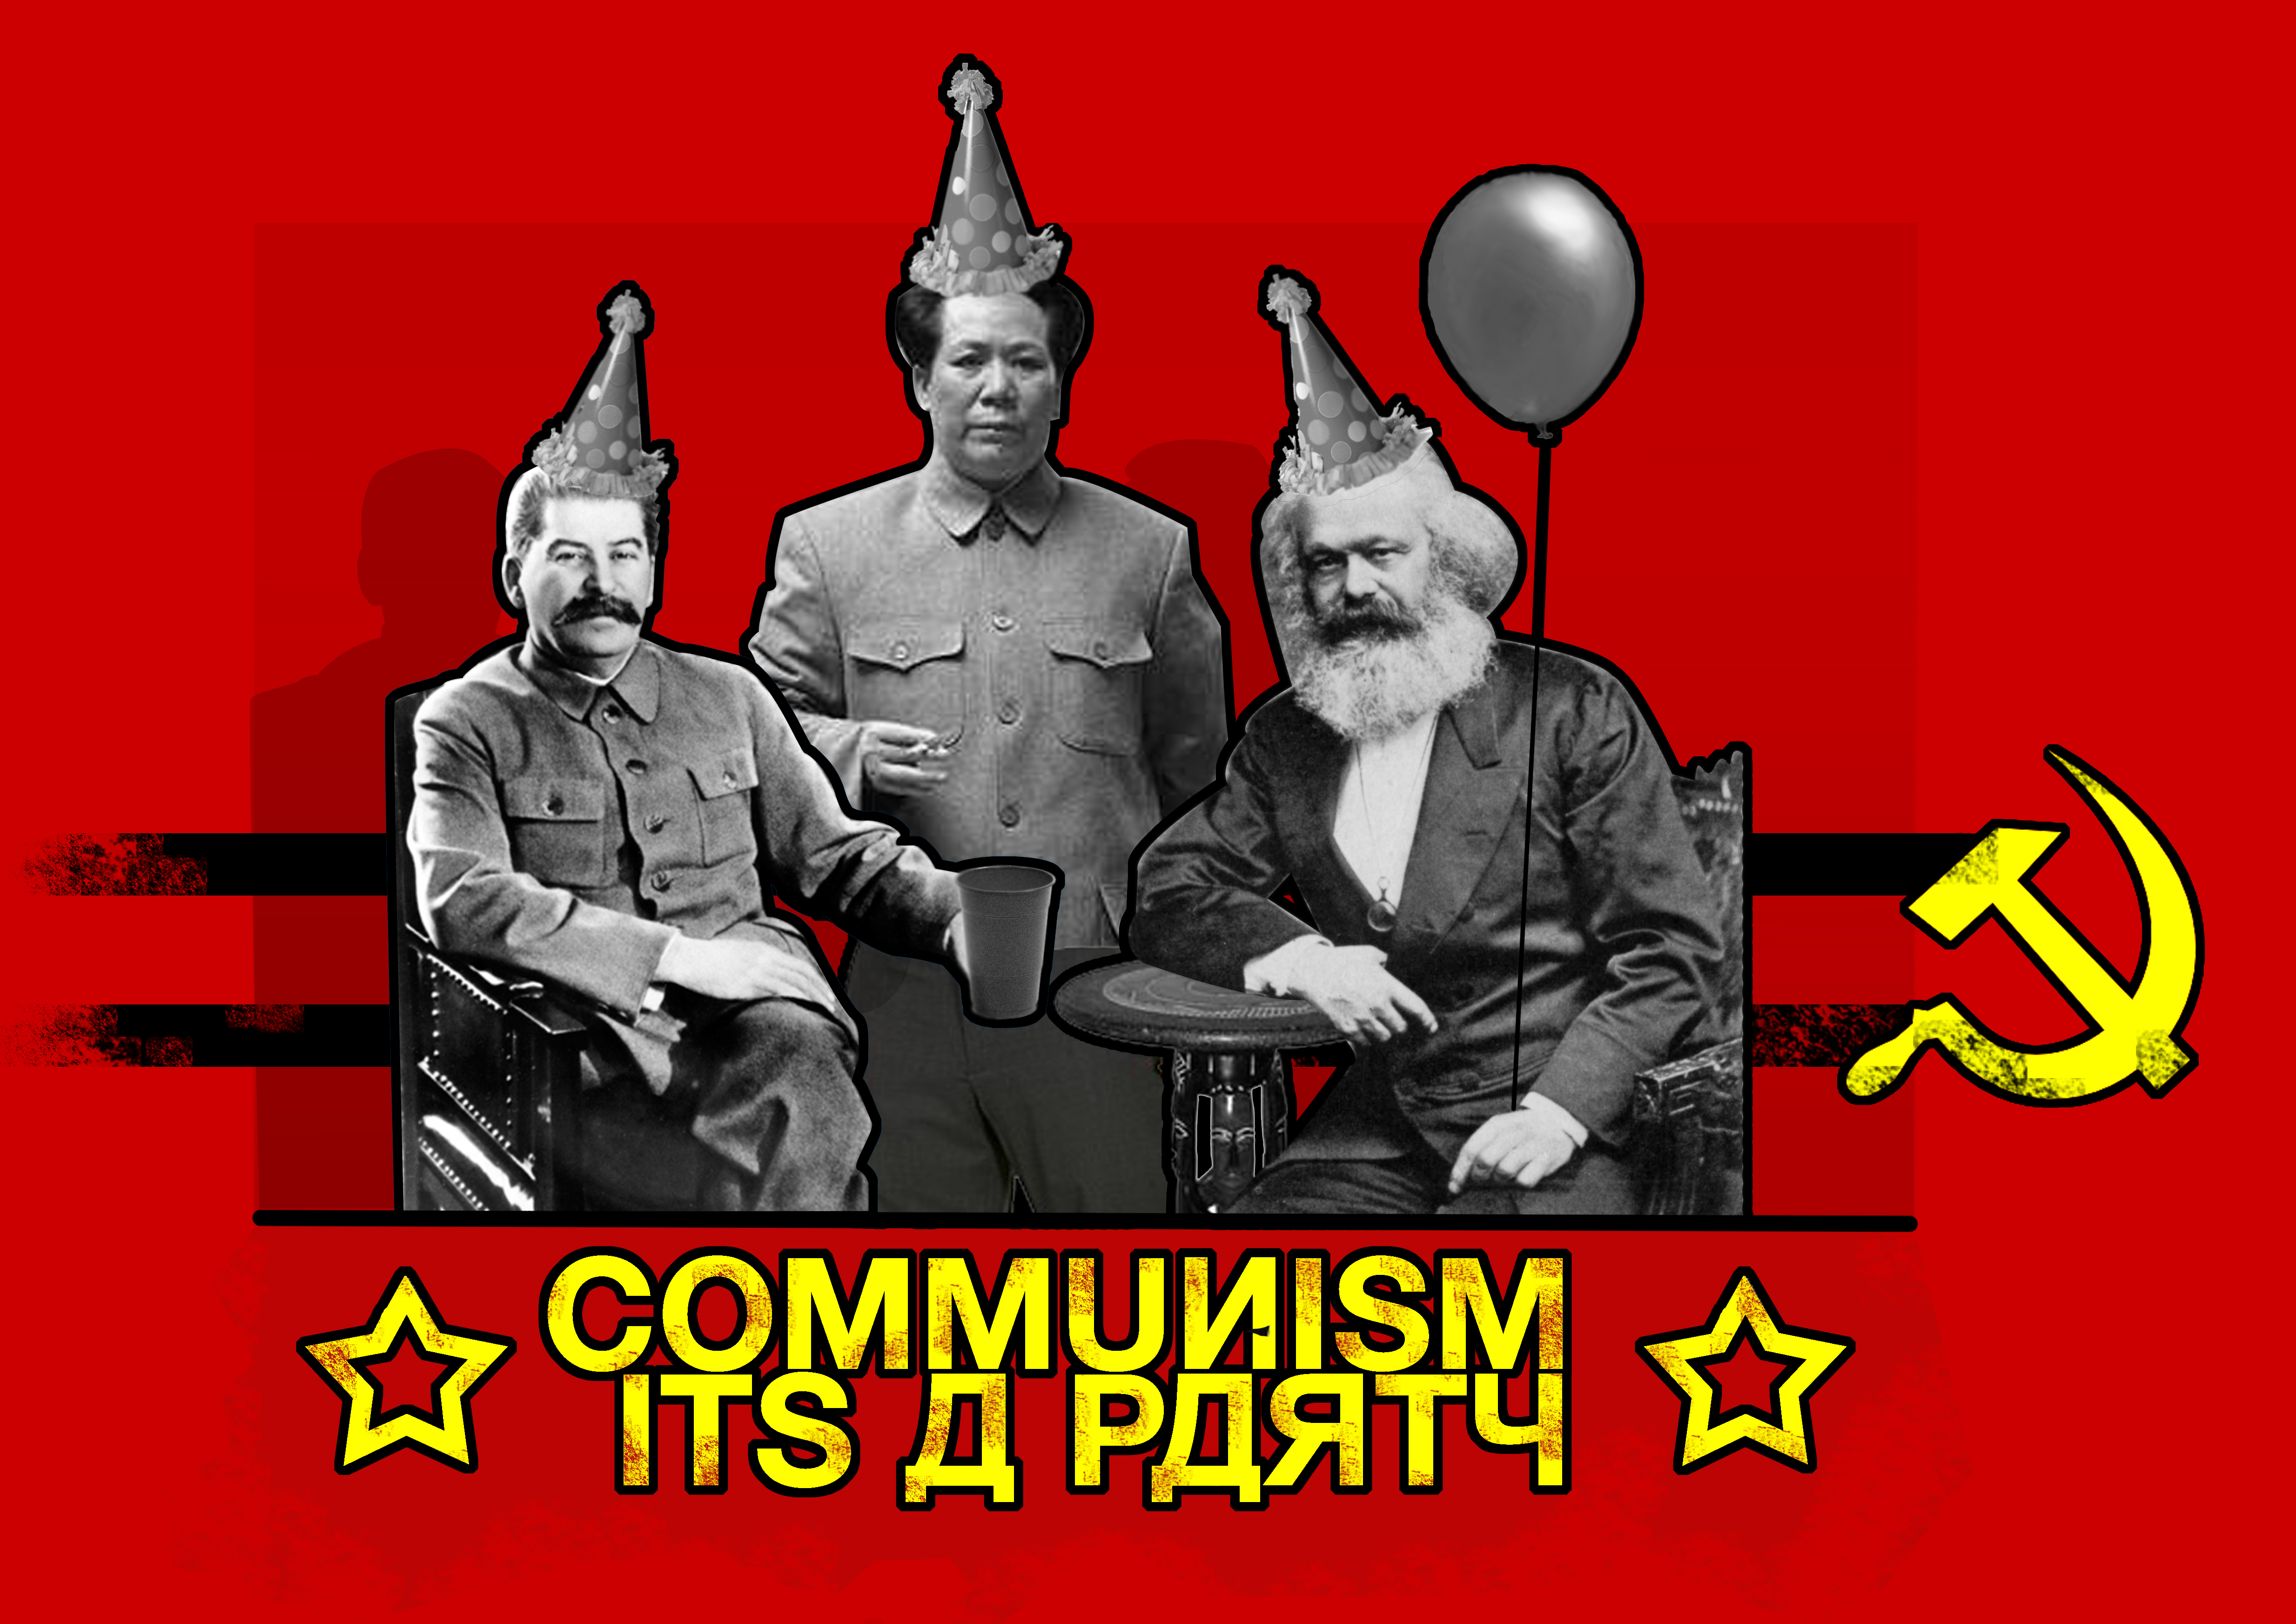 the birth of communism The chinese communist party (ccp) was founded in the early 1920s by intellectuals who were influenced by the western ideas of anarchism and marxism they were inspired by the 1918 bolshevik revolution in russia and by the may fourth movement , which swept across china at the end of world war i.